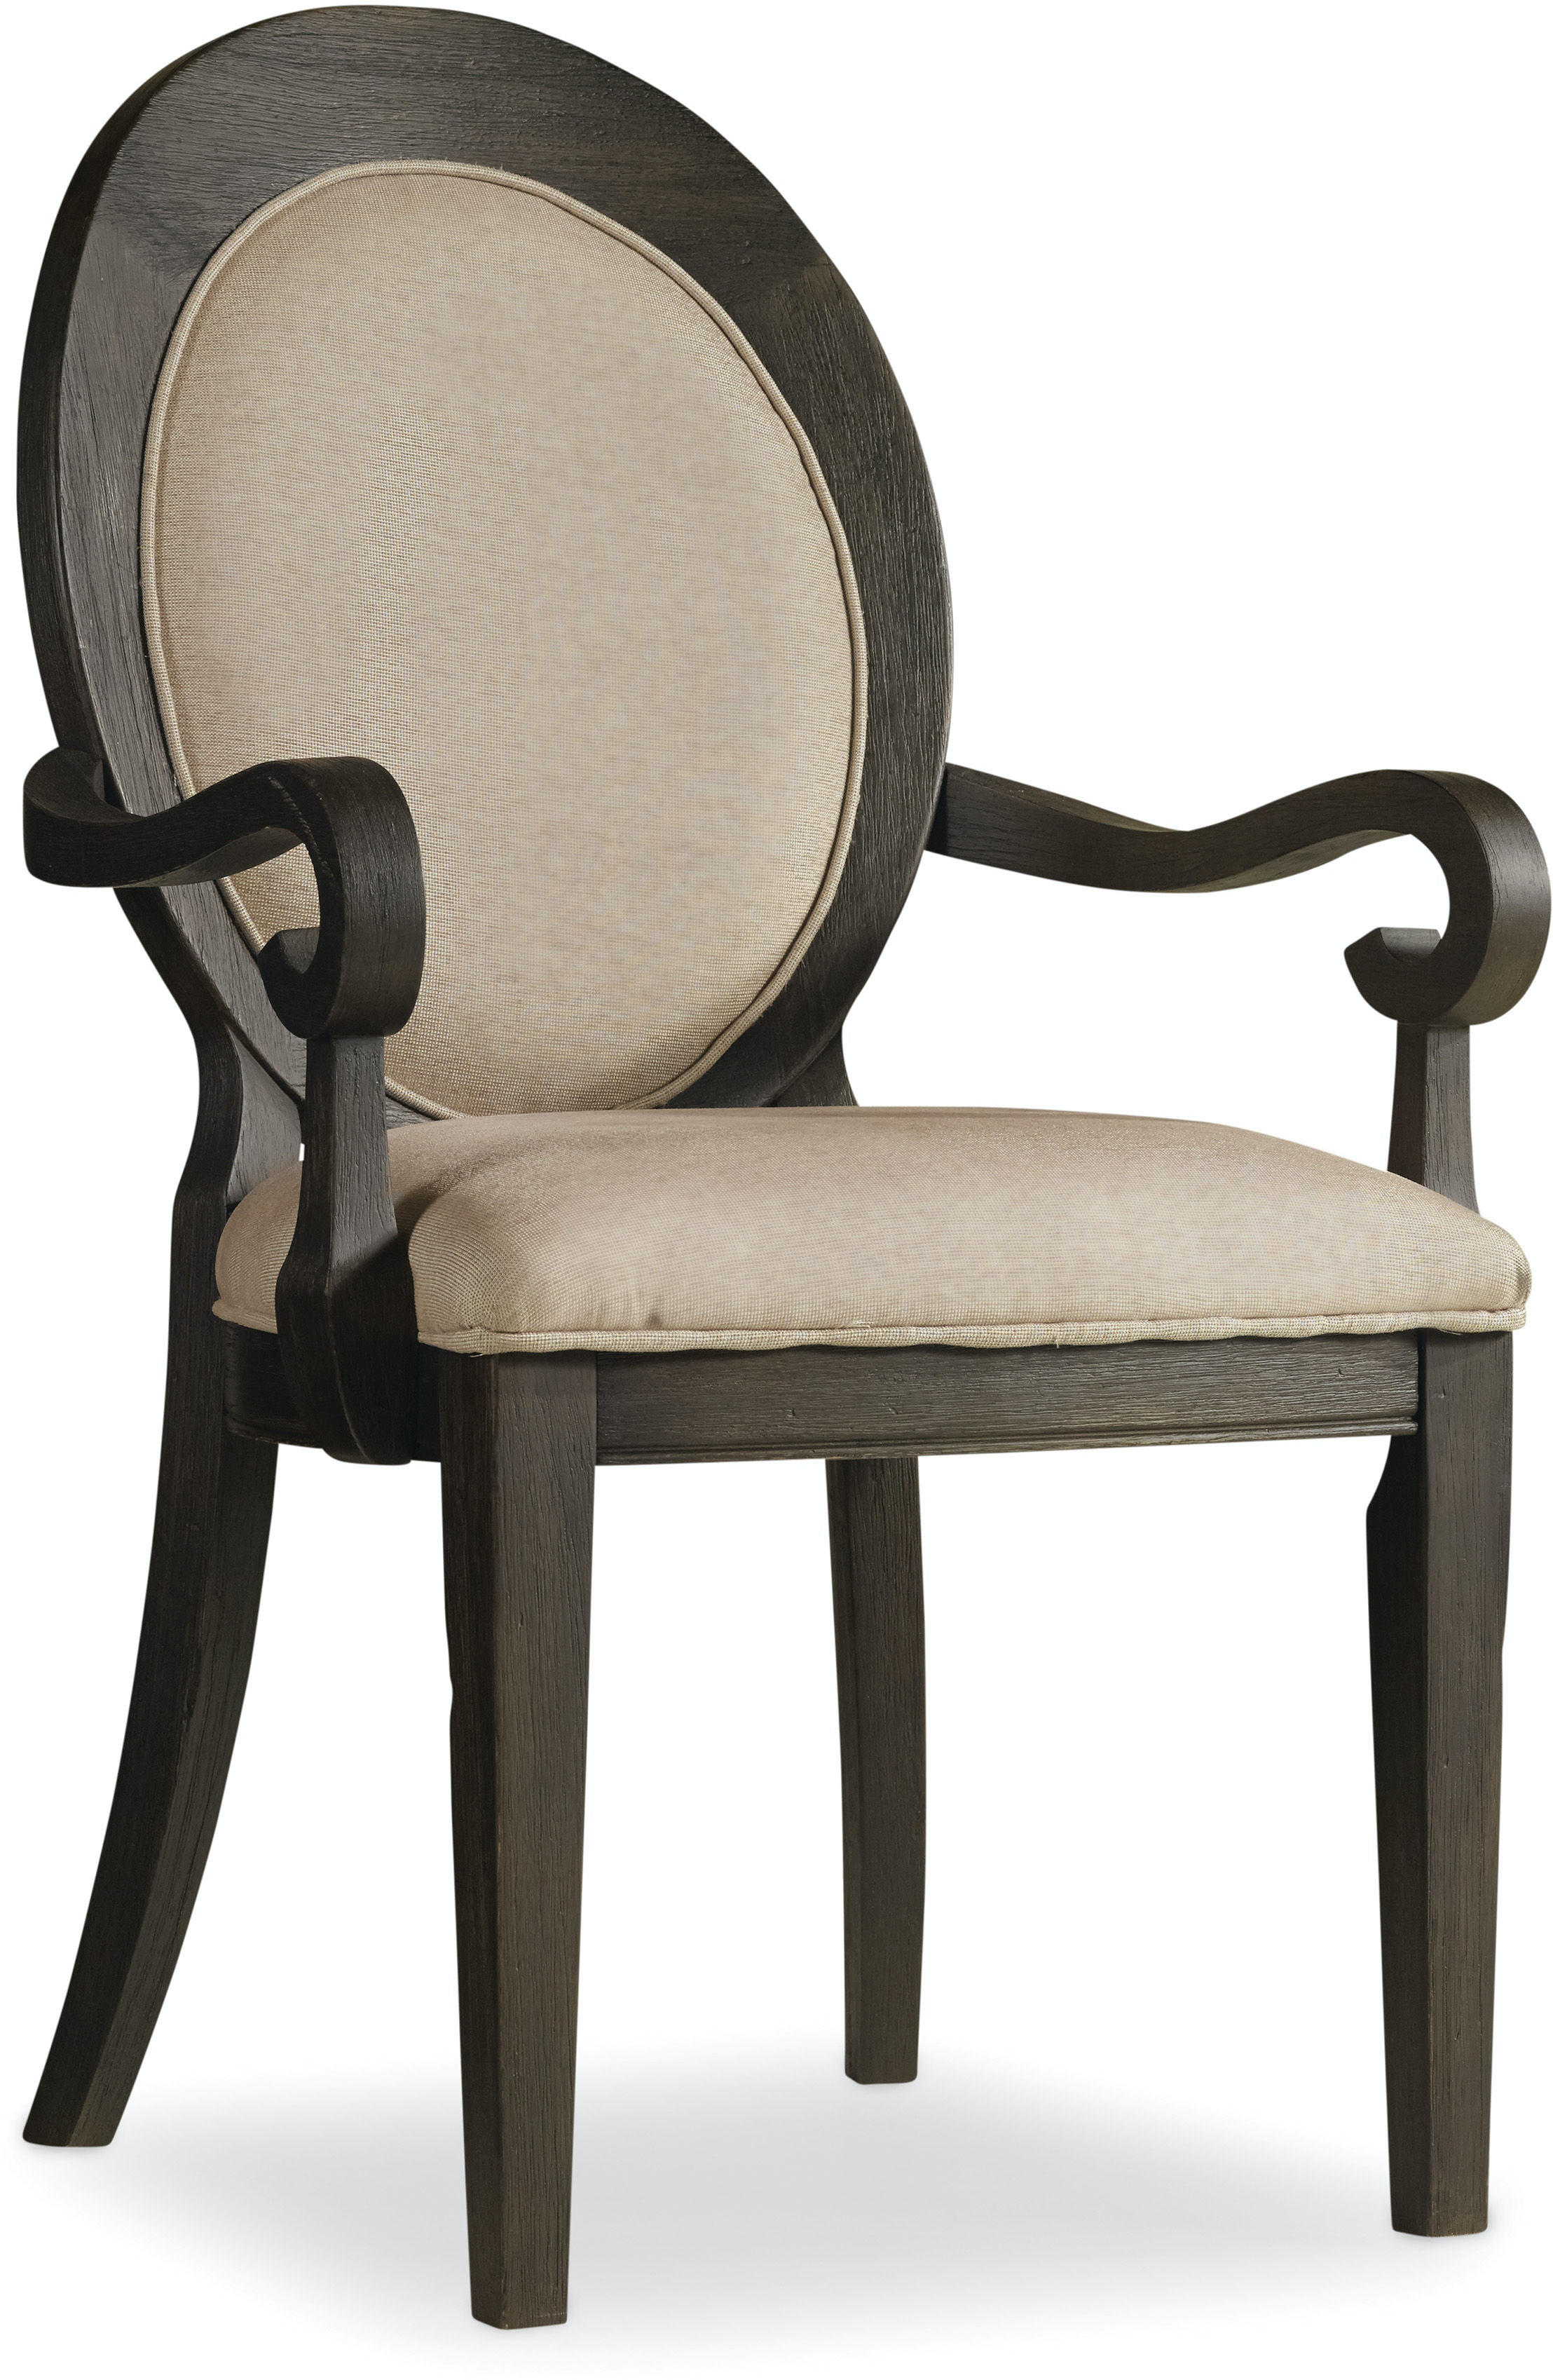 Hooker Furniture Dining Room Corsica Dark Oval Back Arm Chair 5280